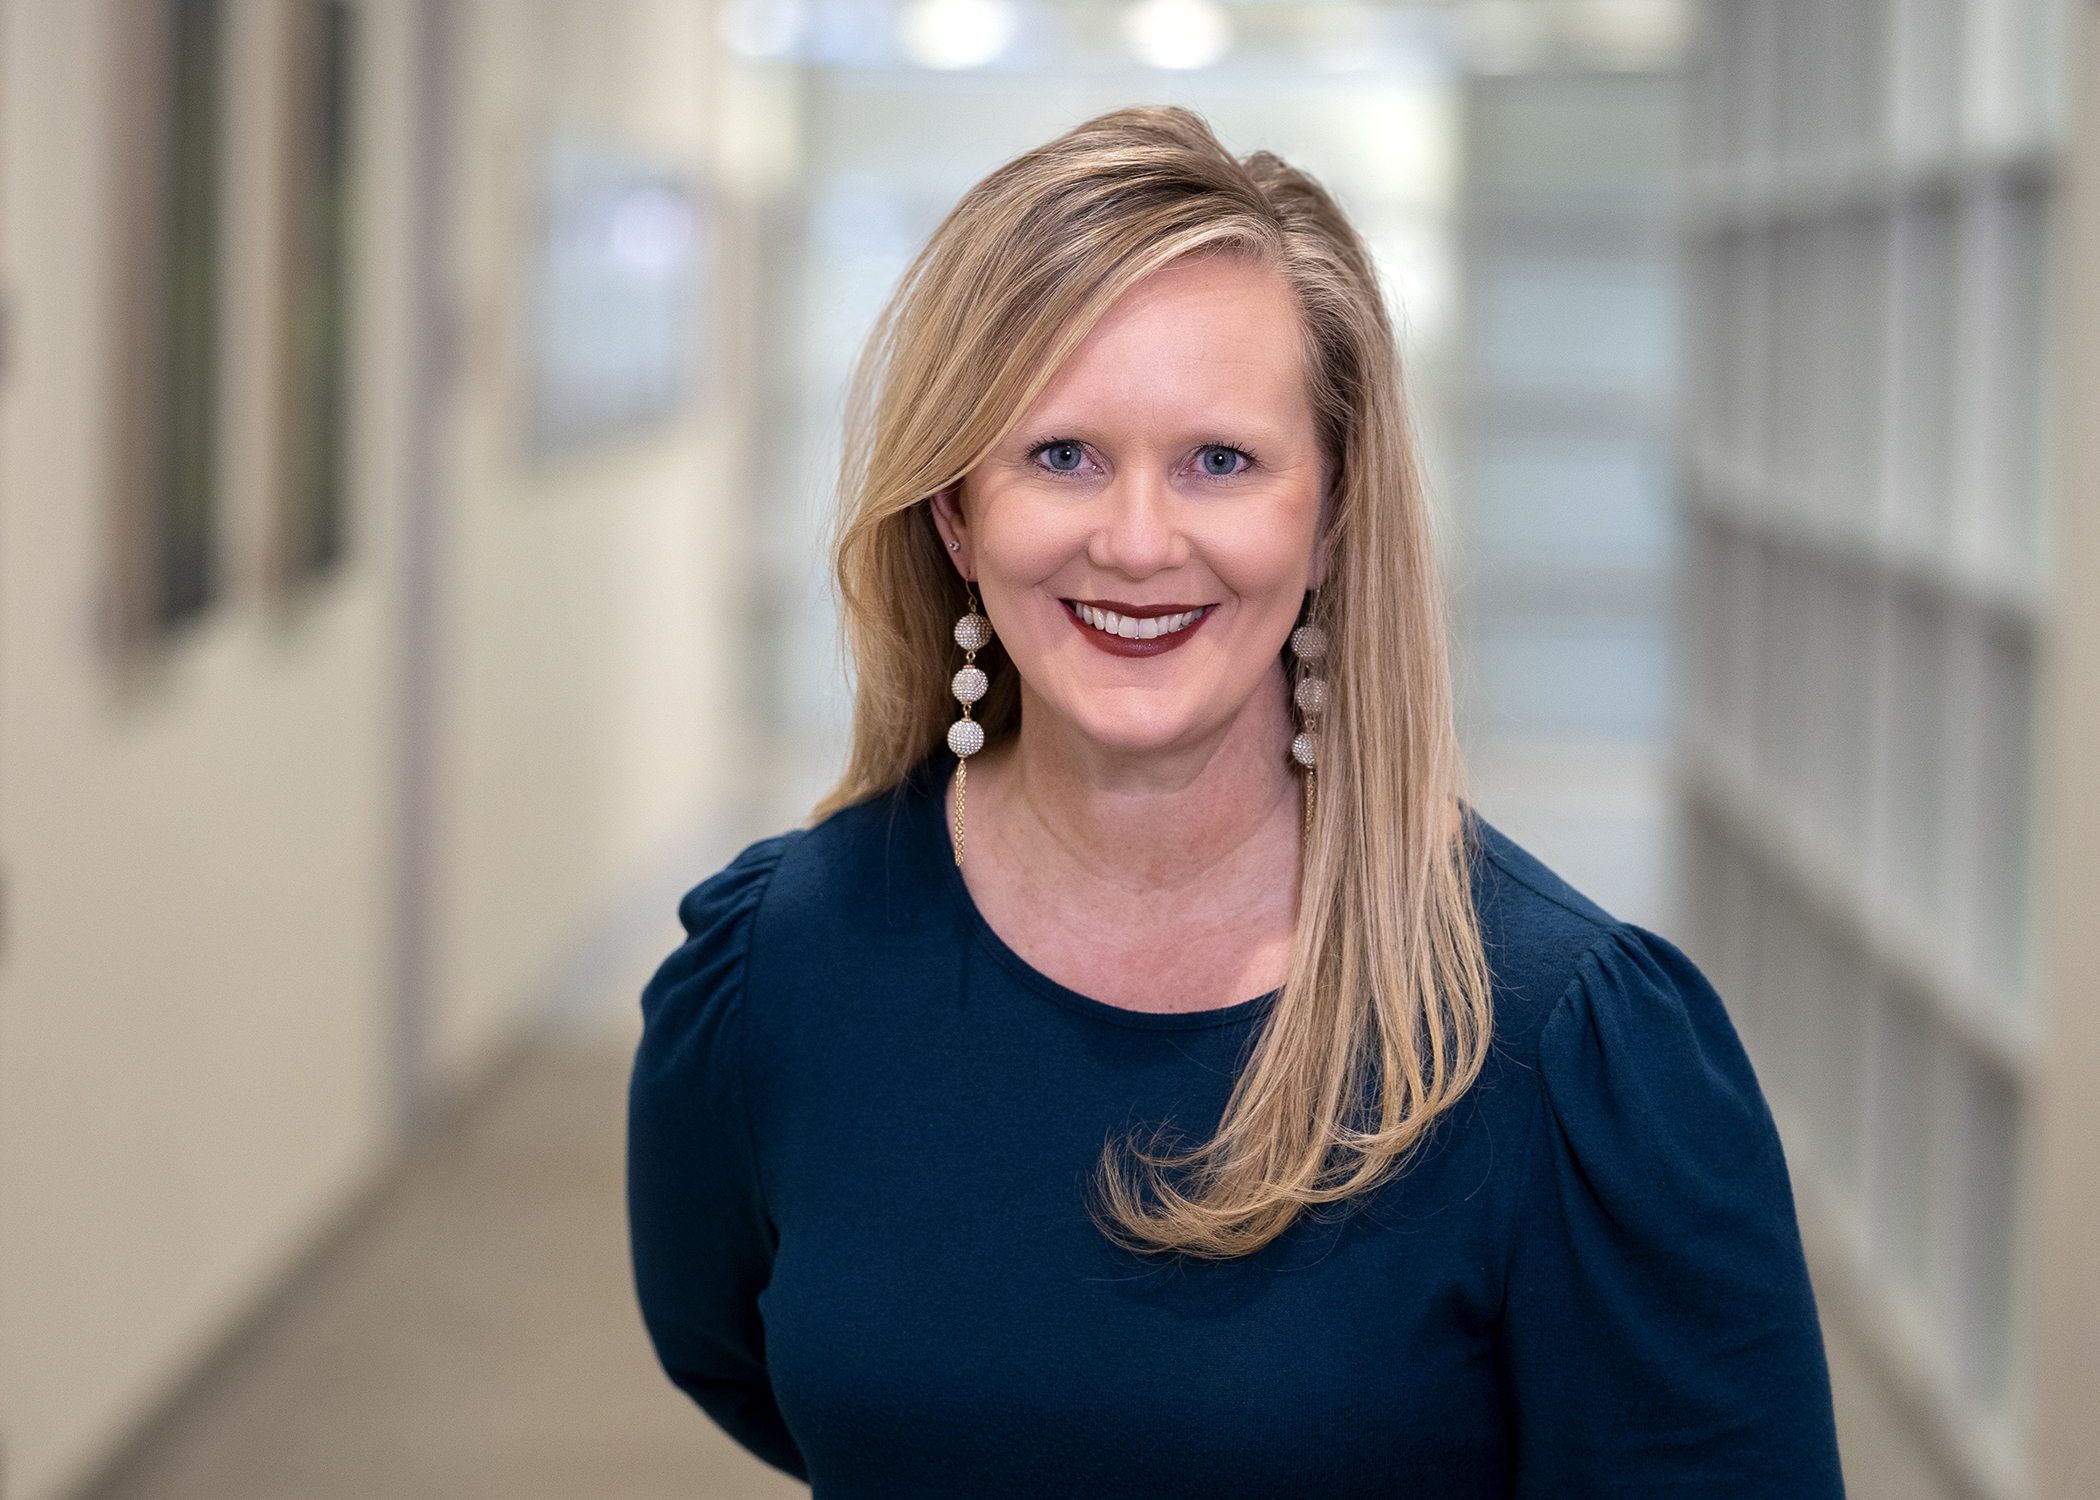 Heather Brandt, Ph.D., is director of the St. Jude HPV Cancer Prevention Program.